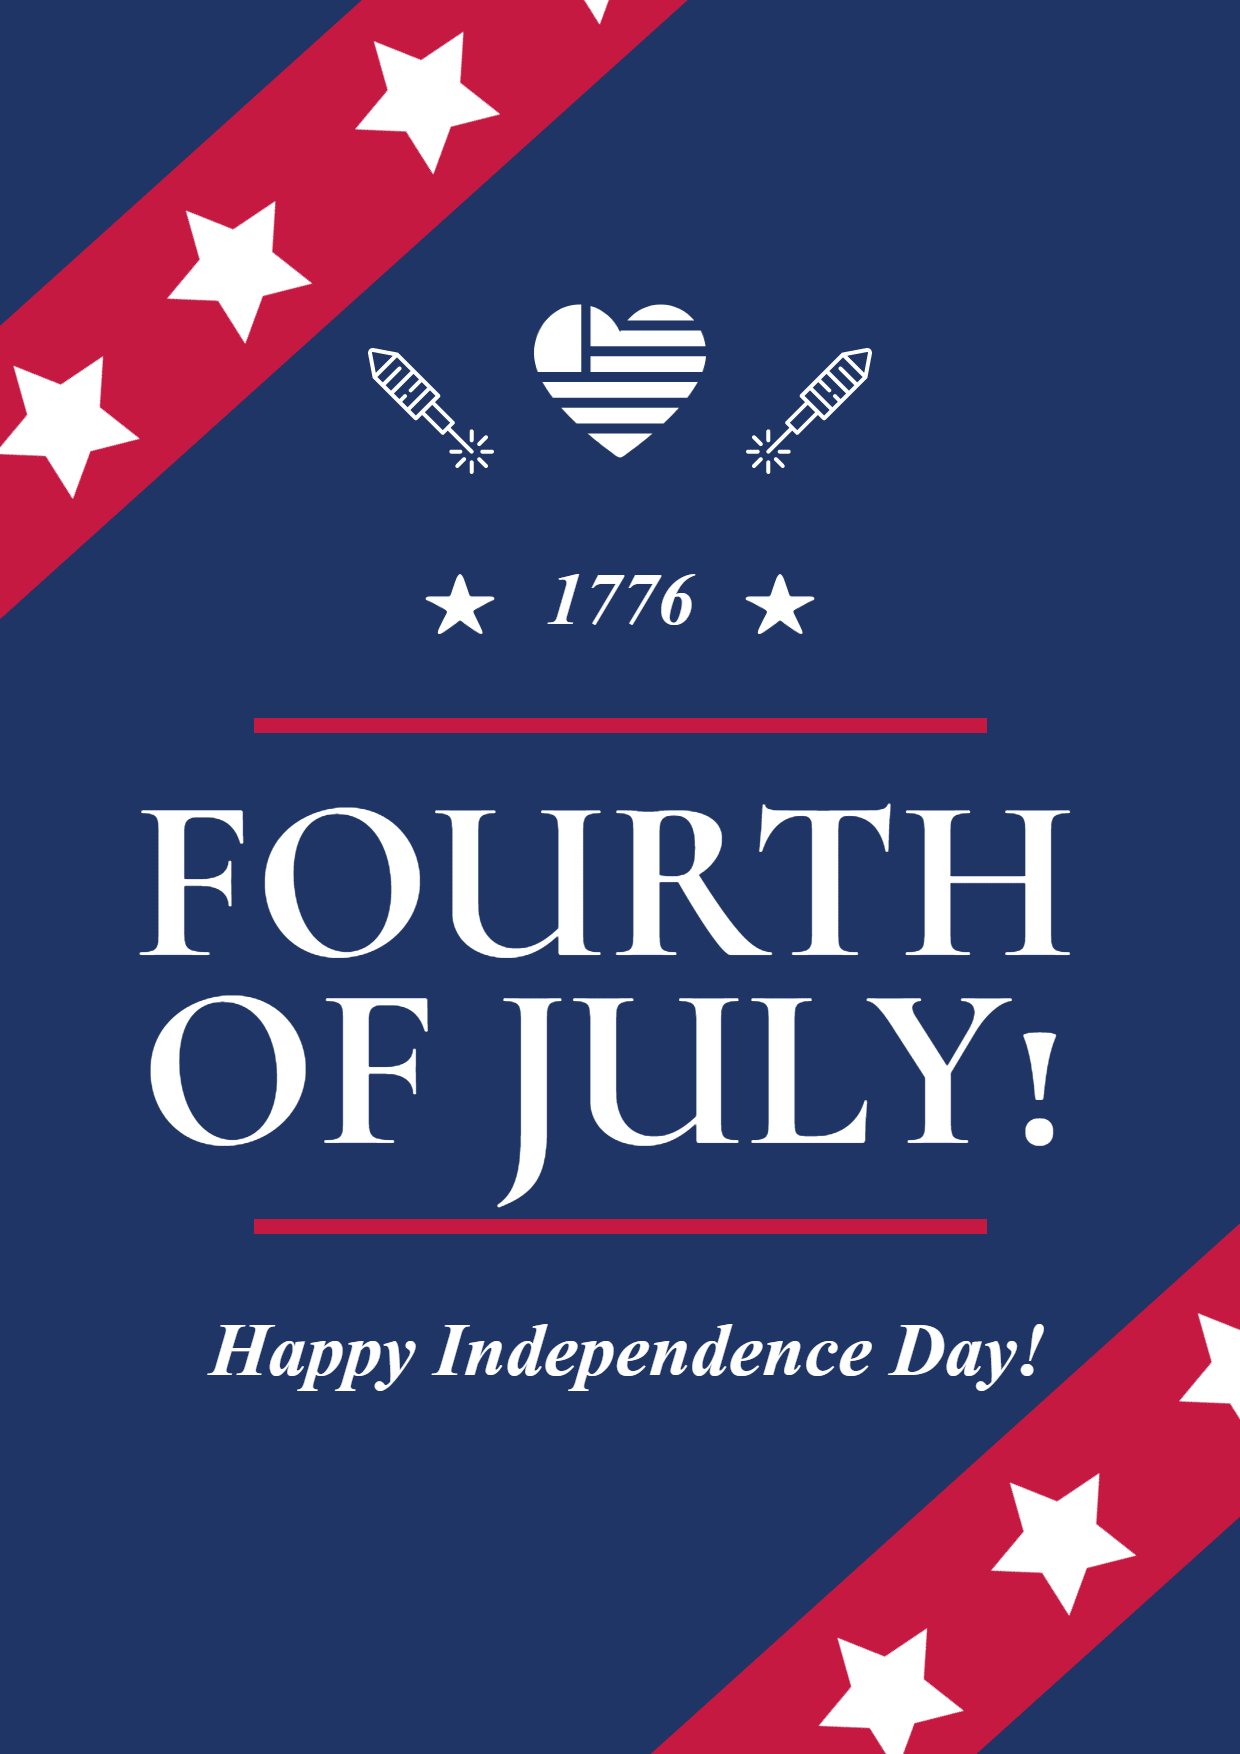 Text, Font, Advertising, Brand, Line, Anniversary, 4thofjuly, Happyforthofjuly, Independenceday, Independence, Day, America, Redwhiteandblue,  Free Image